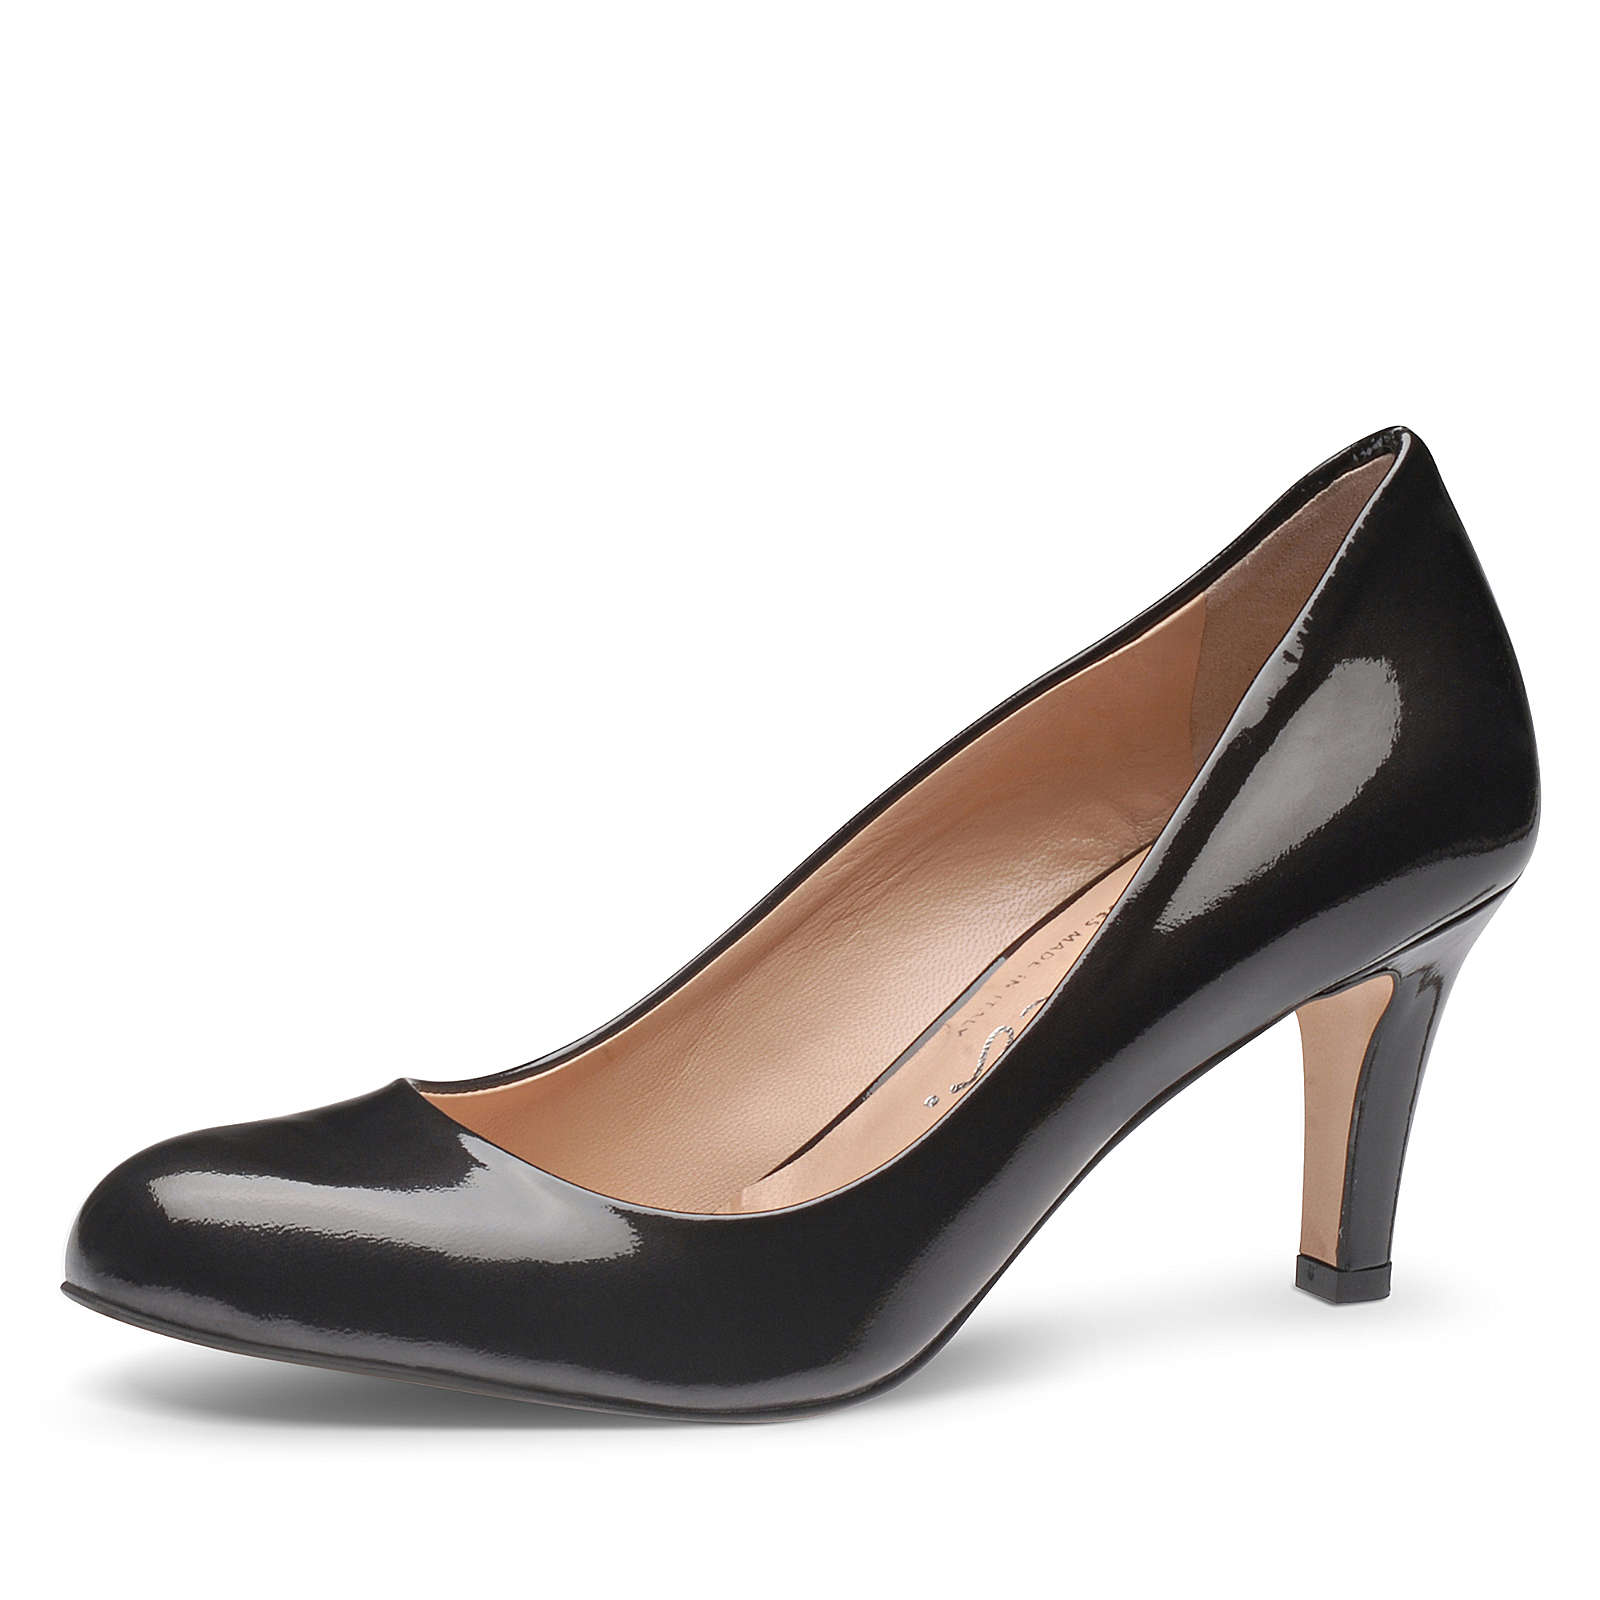 Evita Shoes Pumps schwarz Damen Gr. 35